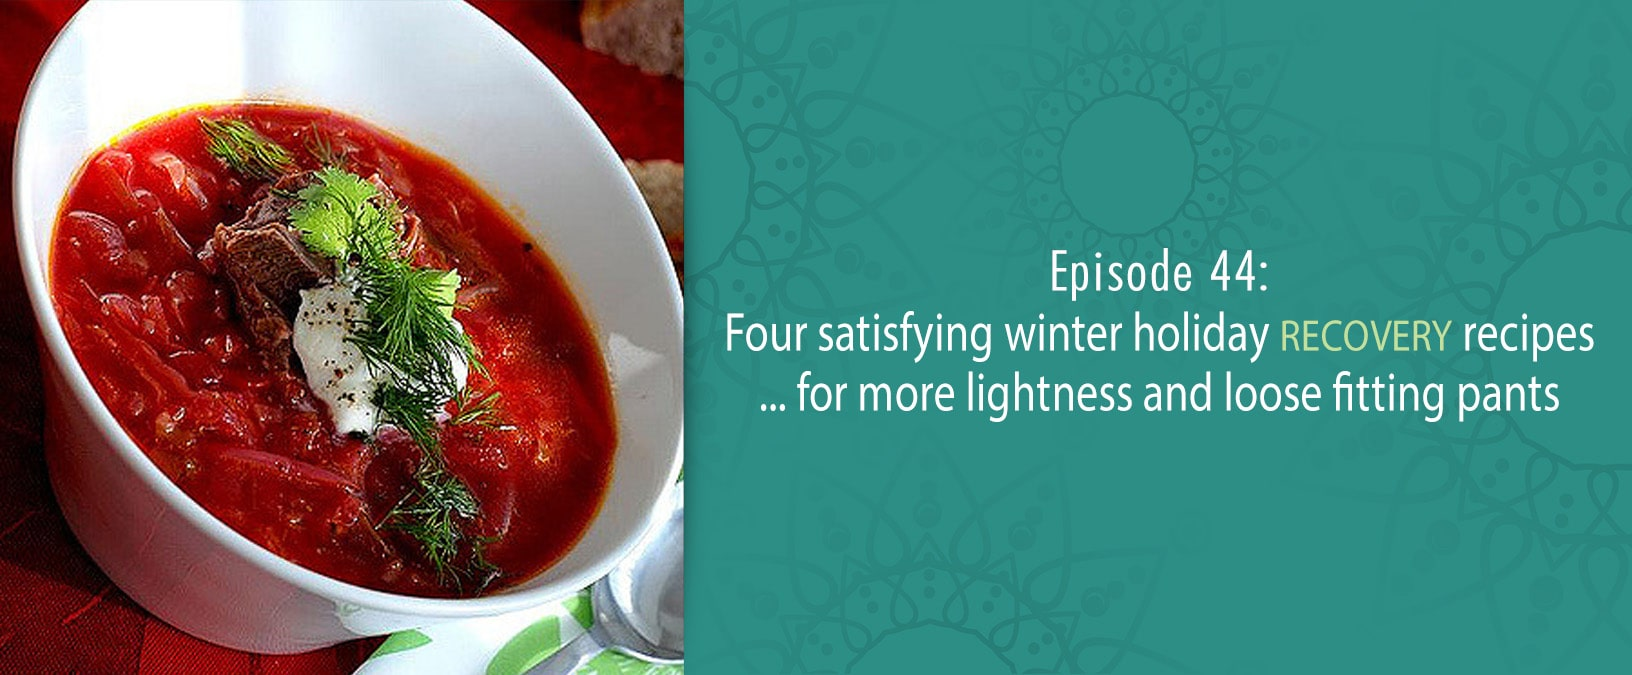 Four satisfying winter holiday recovery recipes ... for more lightness and loose fitting pants